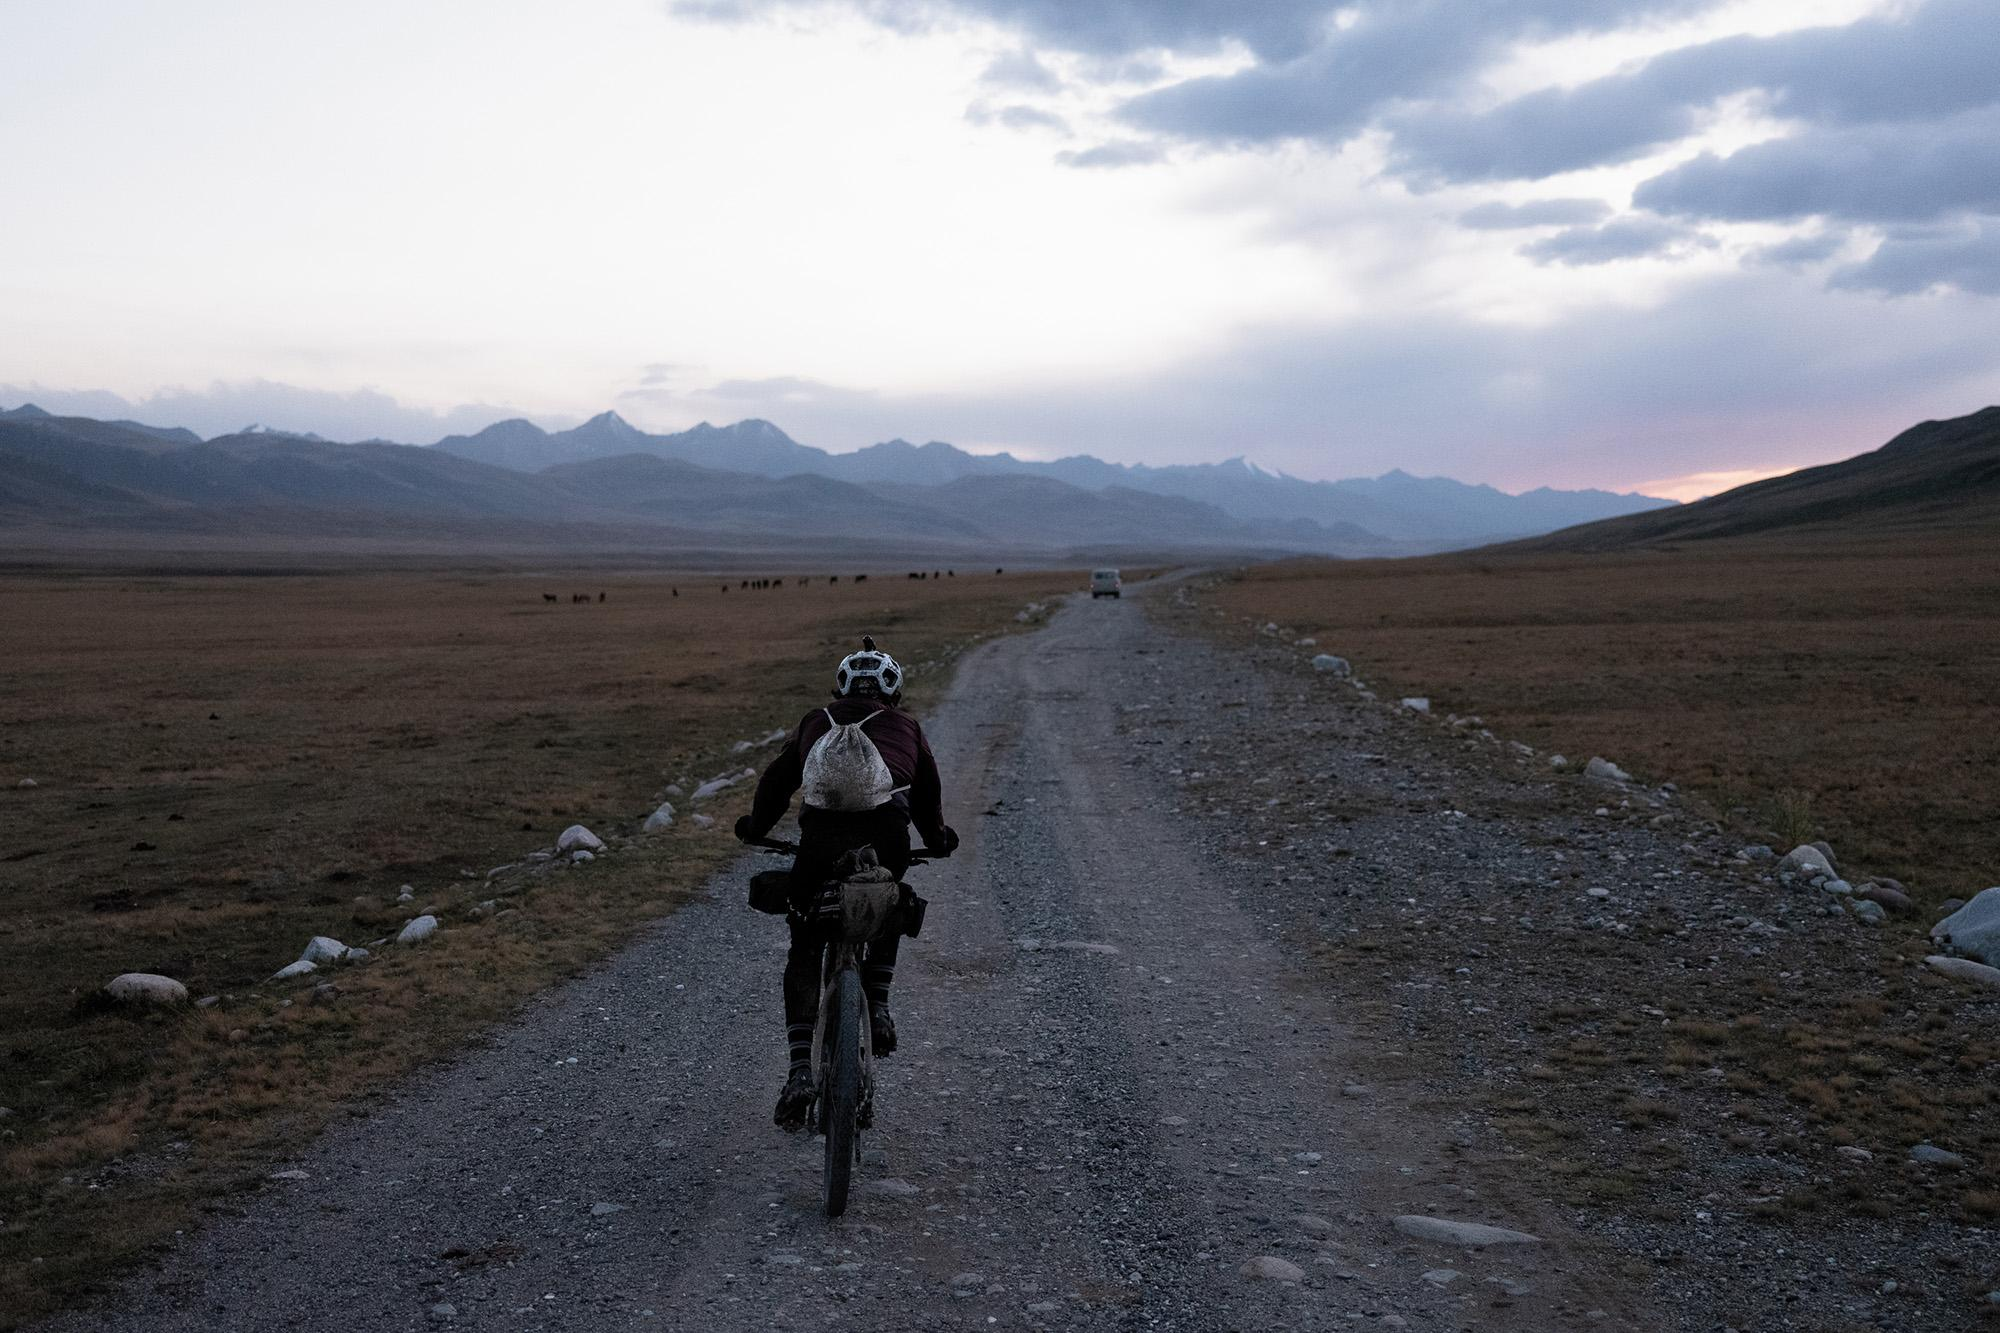 Melancholic Beauty on the Silk Road Mountain Race